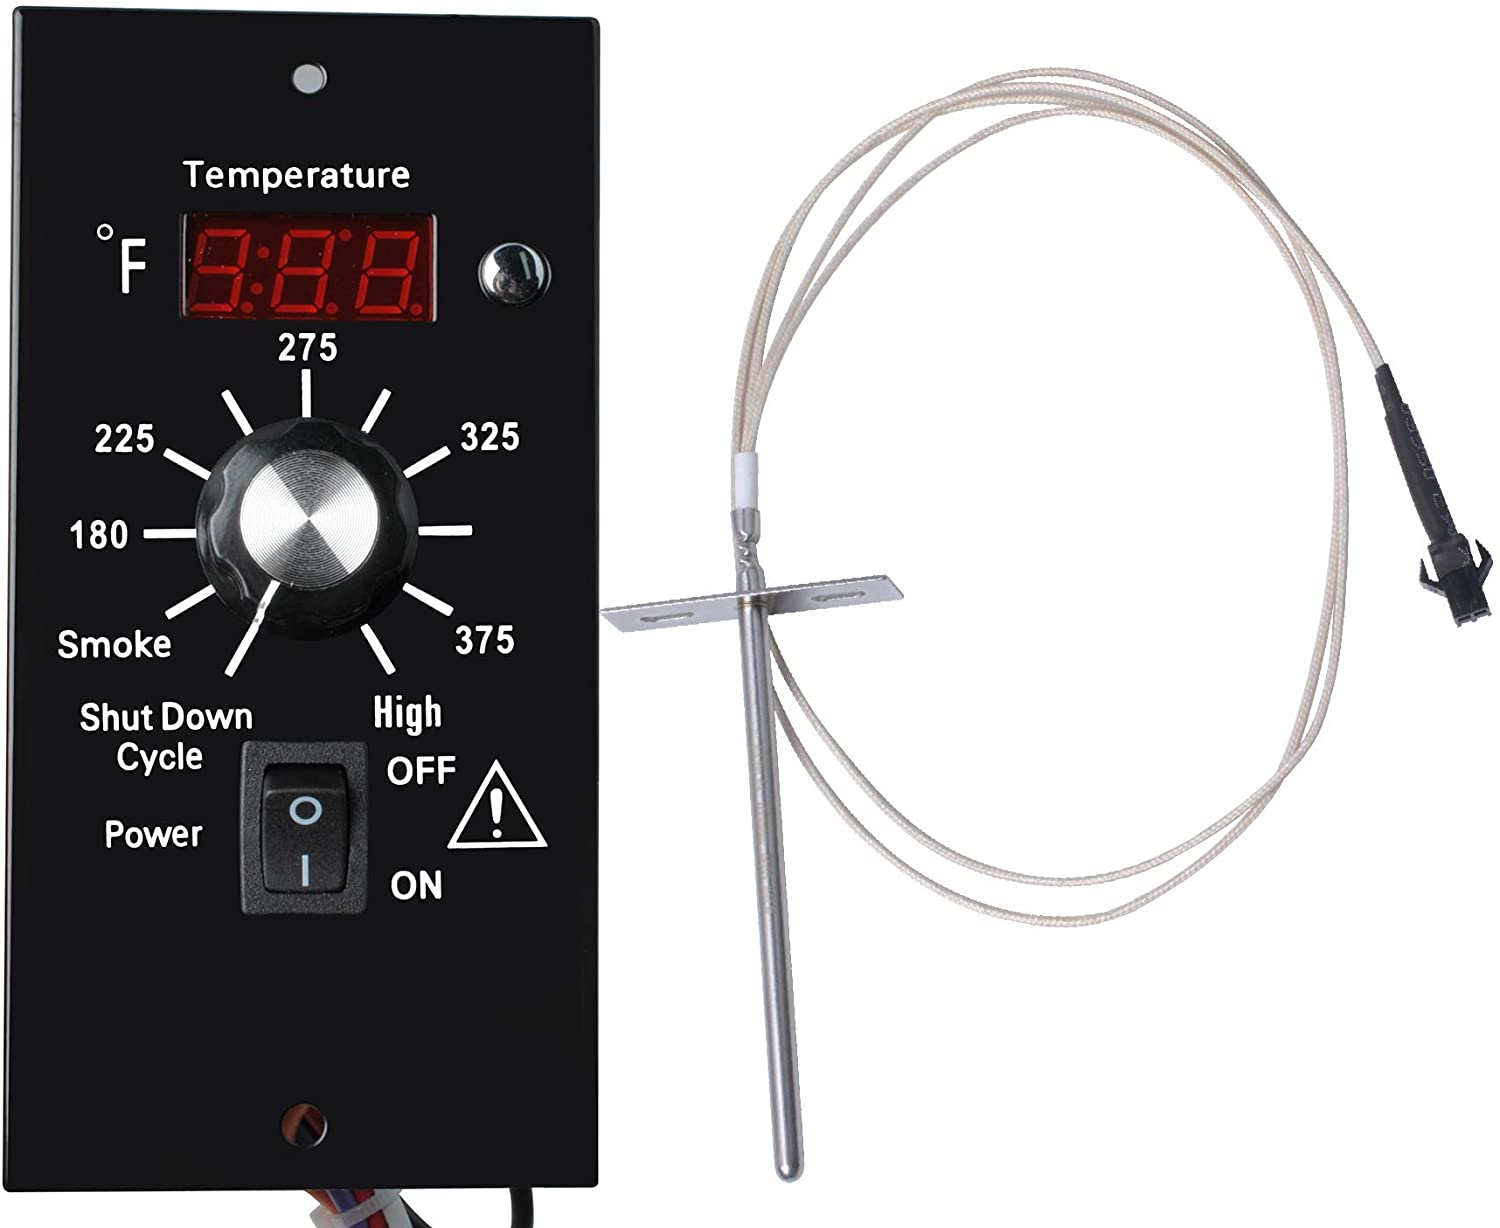 Podoy Digital Thermostat Kit for Traeger Pellet Grills, Barbecue Grill Replacement Parts with LED Display and RTD Temperature Sensor…